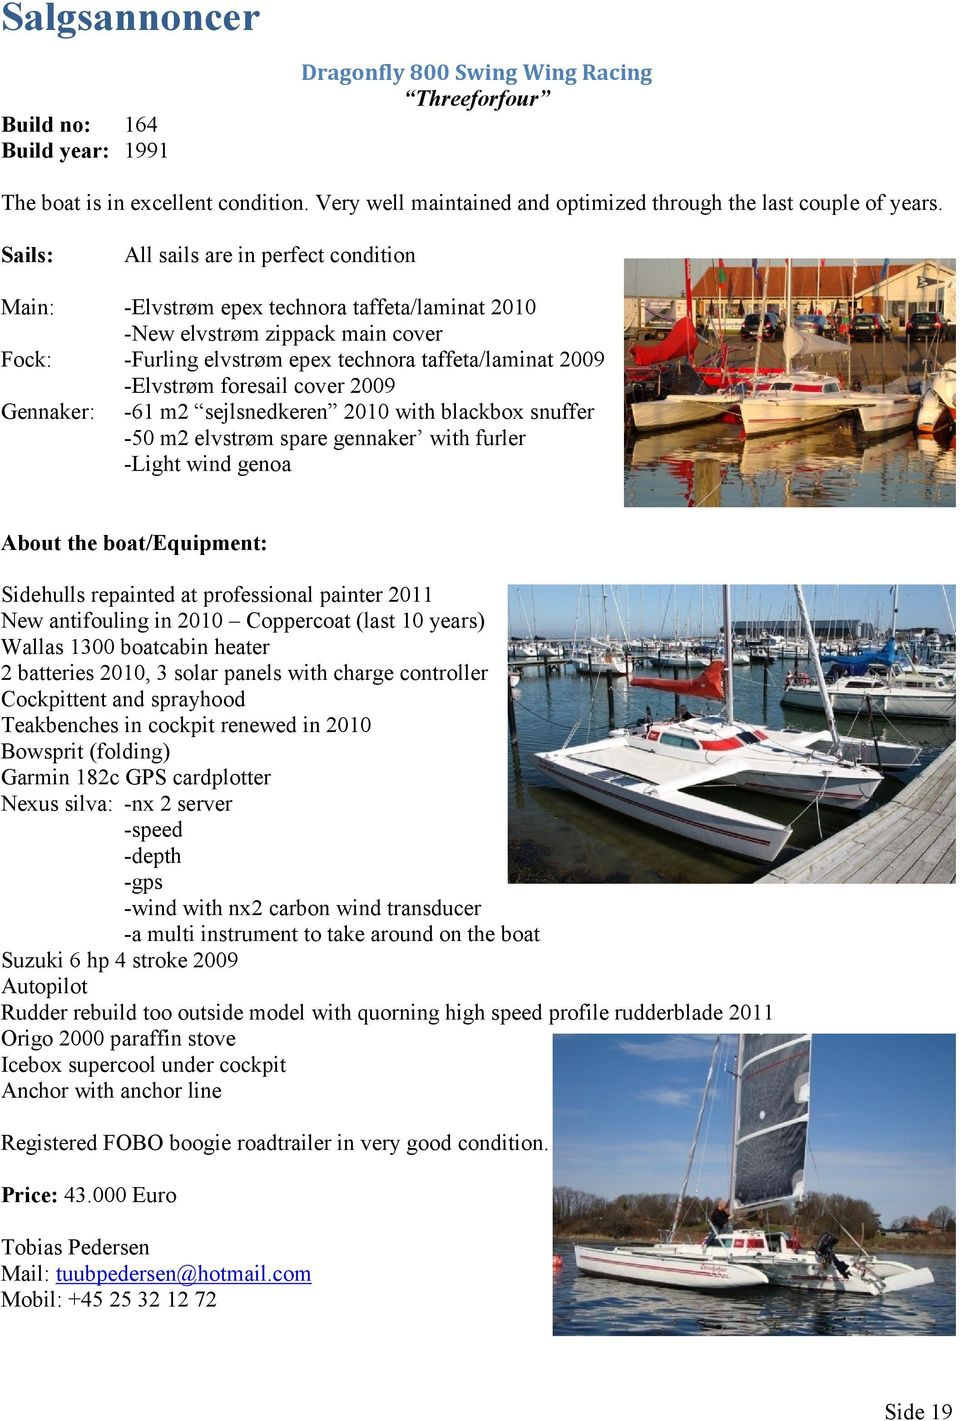 foresail cover 2009 Gennaker: -61 m2 sejlsnedkeren 2010 with blackbox snuffer -50 m2 elvstrøm spare gennaker with furler -Light wind genoa About the boat/equipment: Sidehulls repainted at